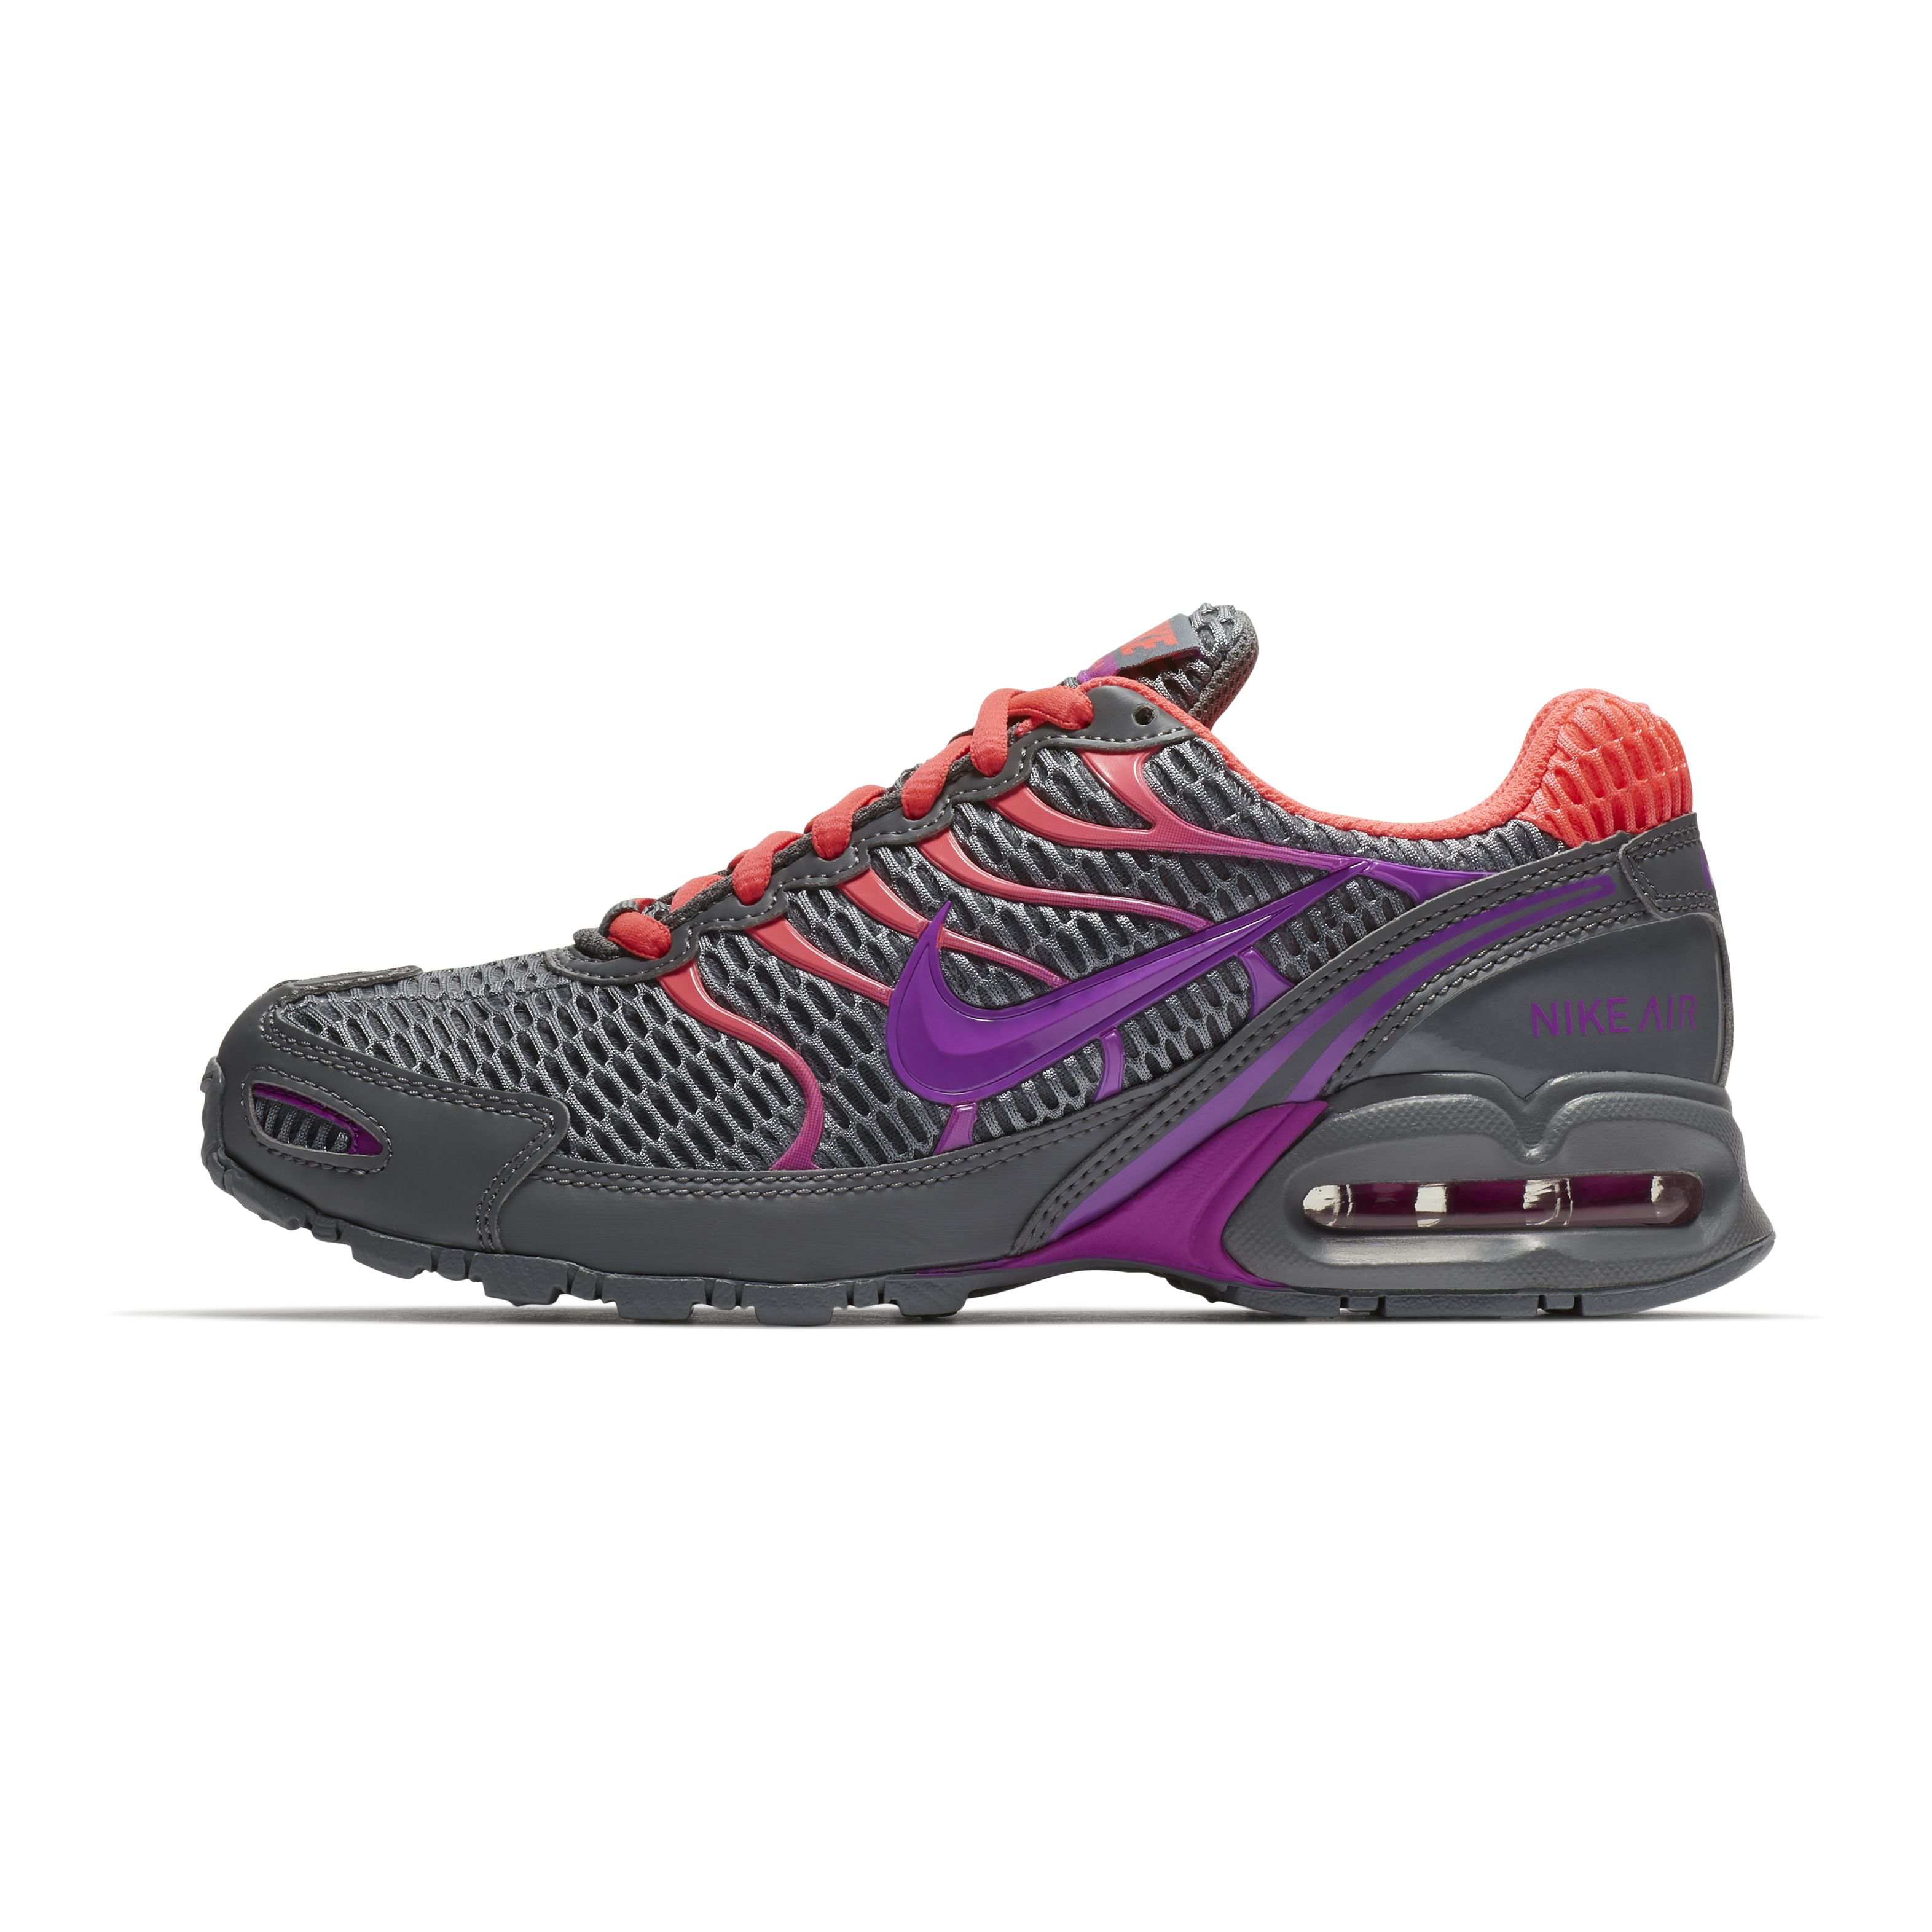 factory price a6f24 626db Womens Nike Air Max Torch 4 Runner Gray Purple Pink in Gray